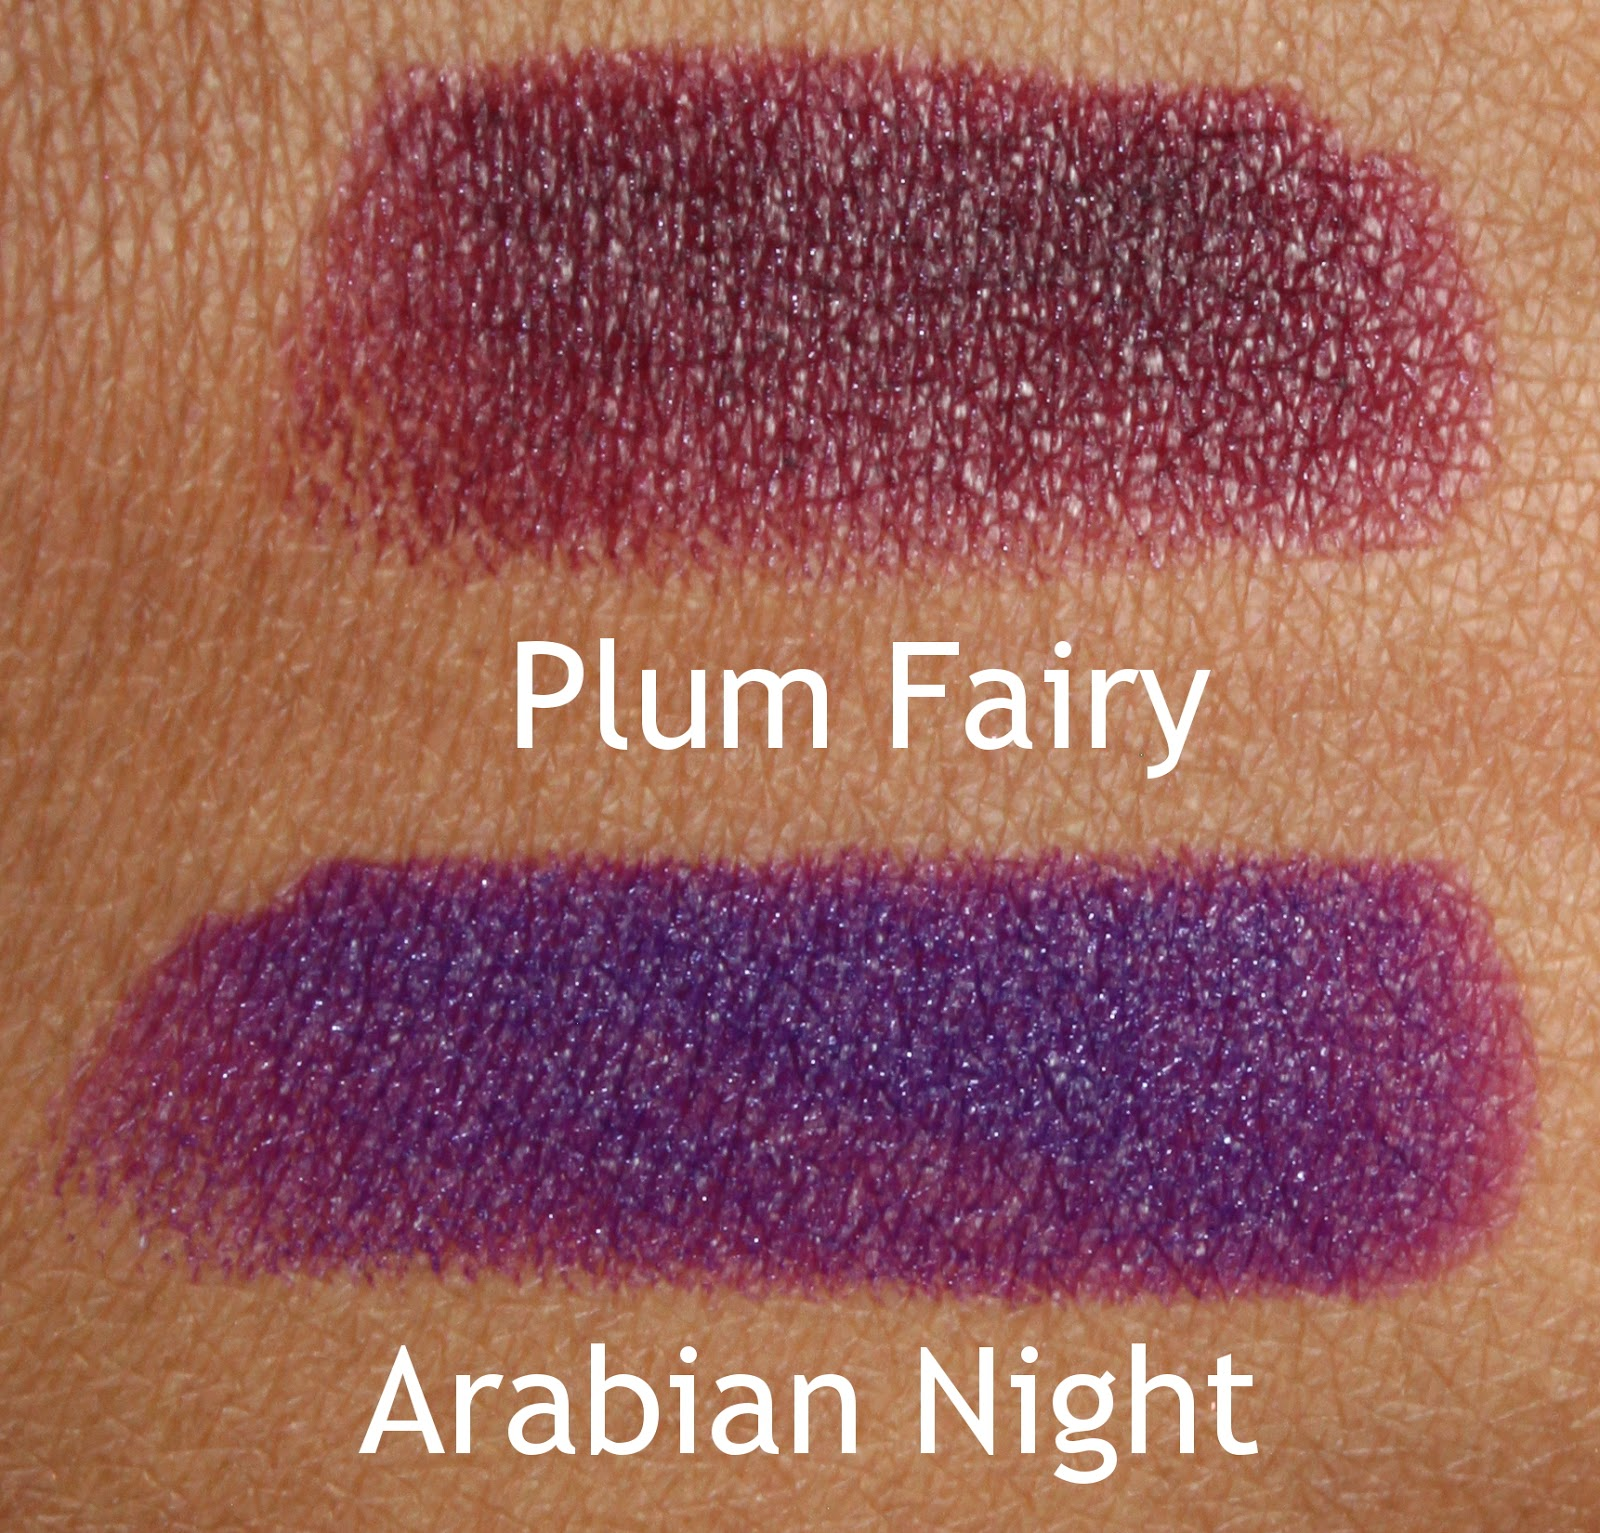 coloured raine lipstick swatches plum fairy arabian night